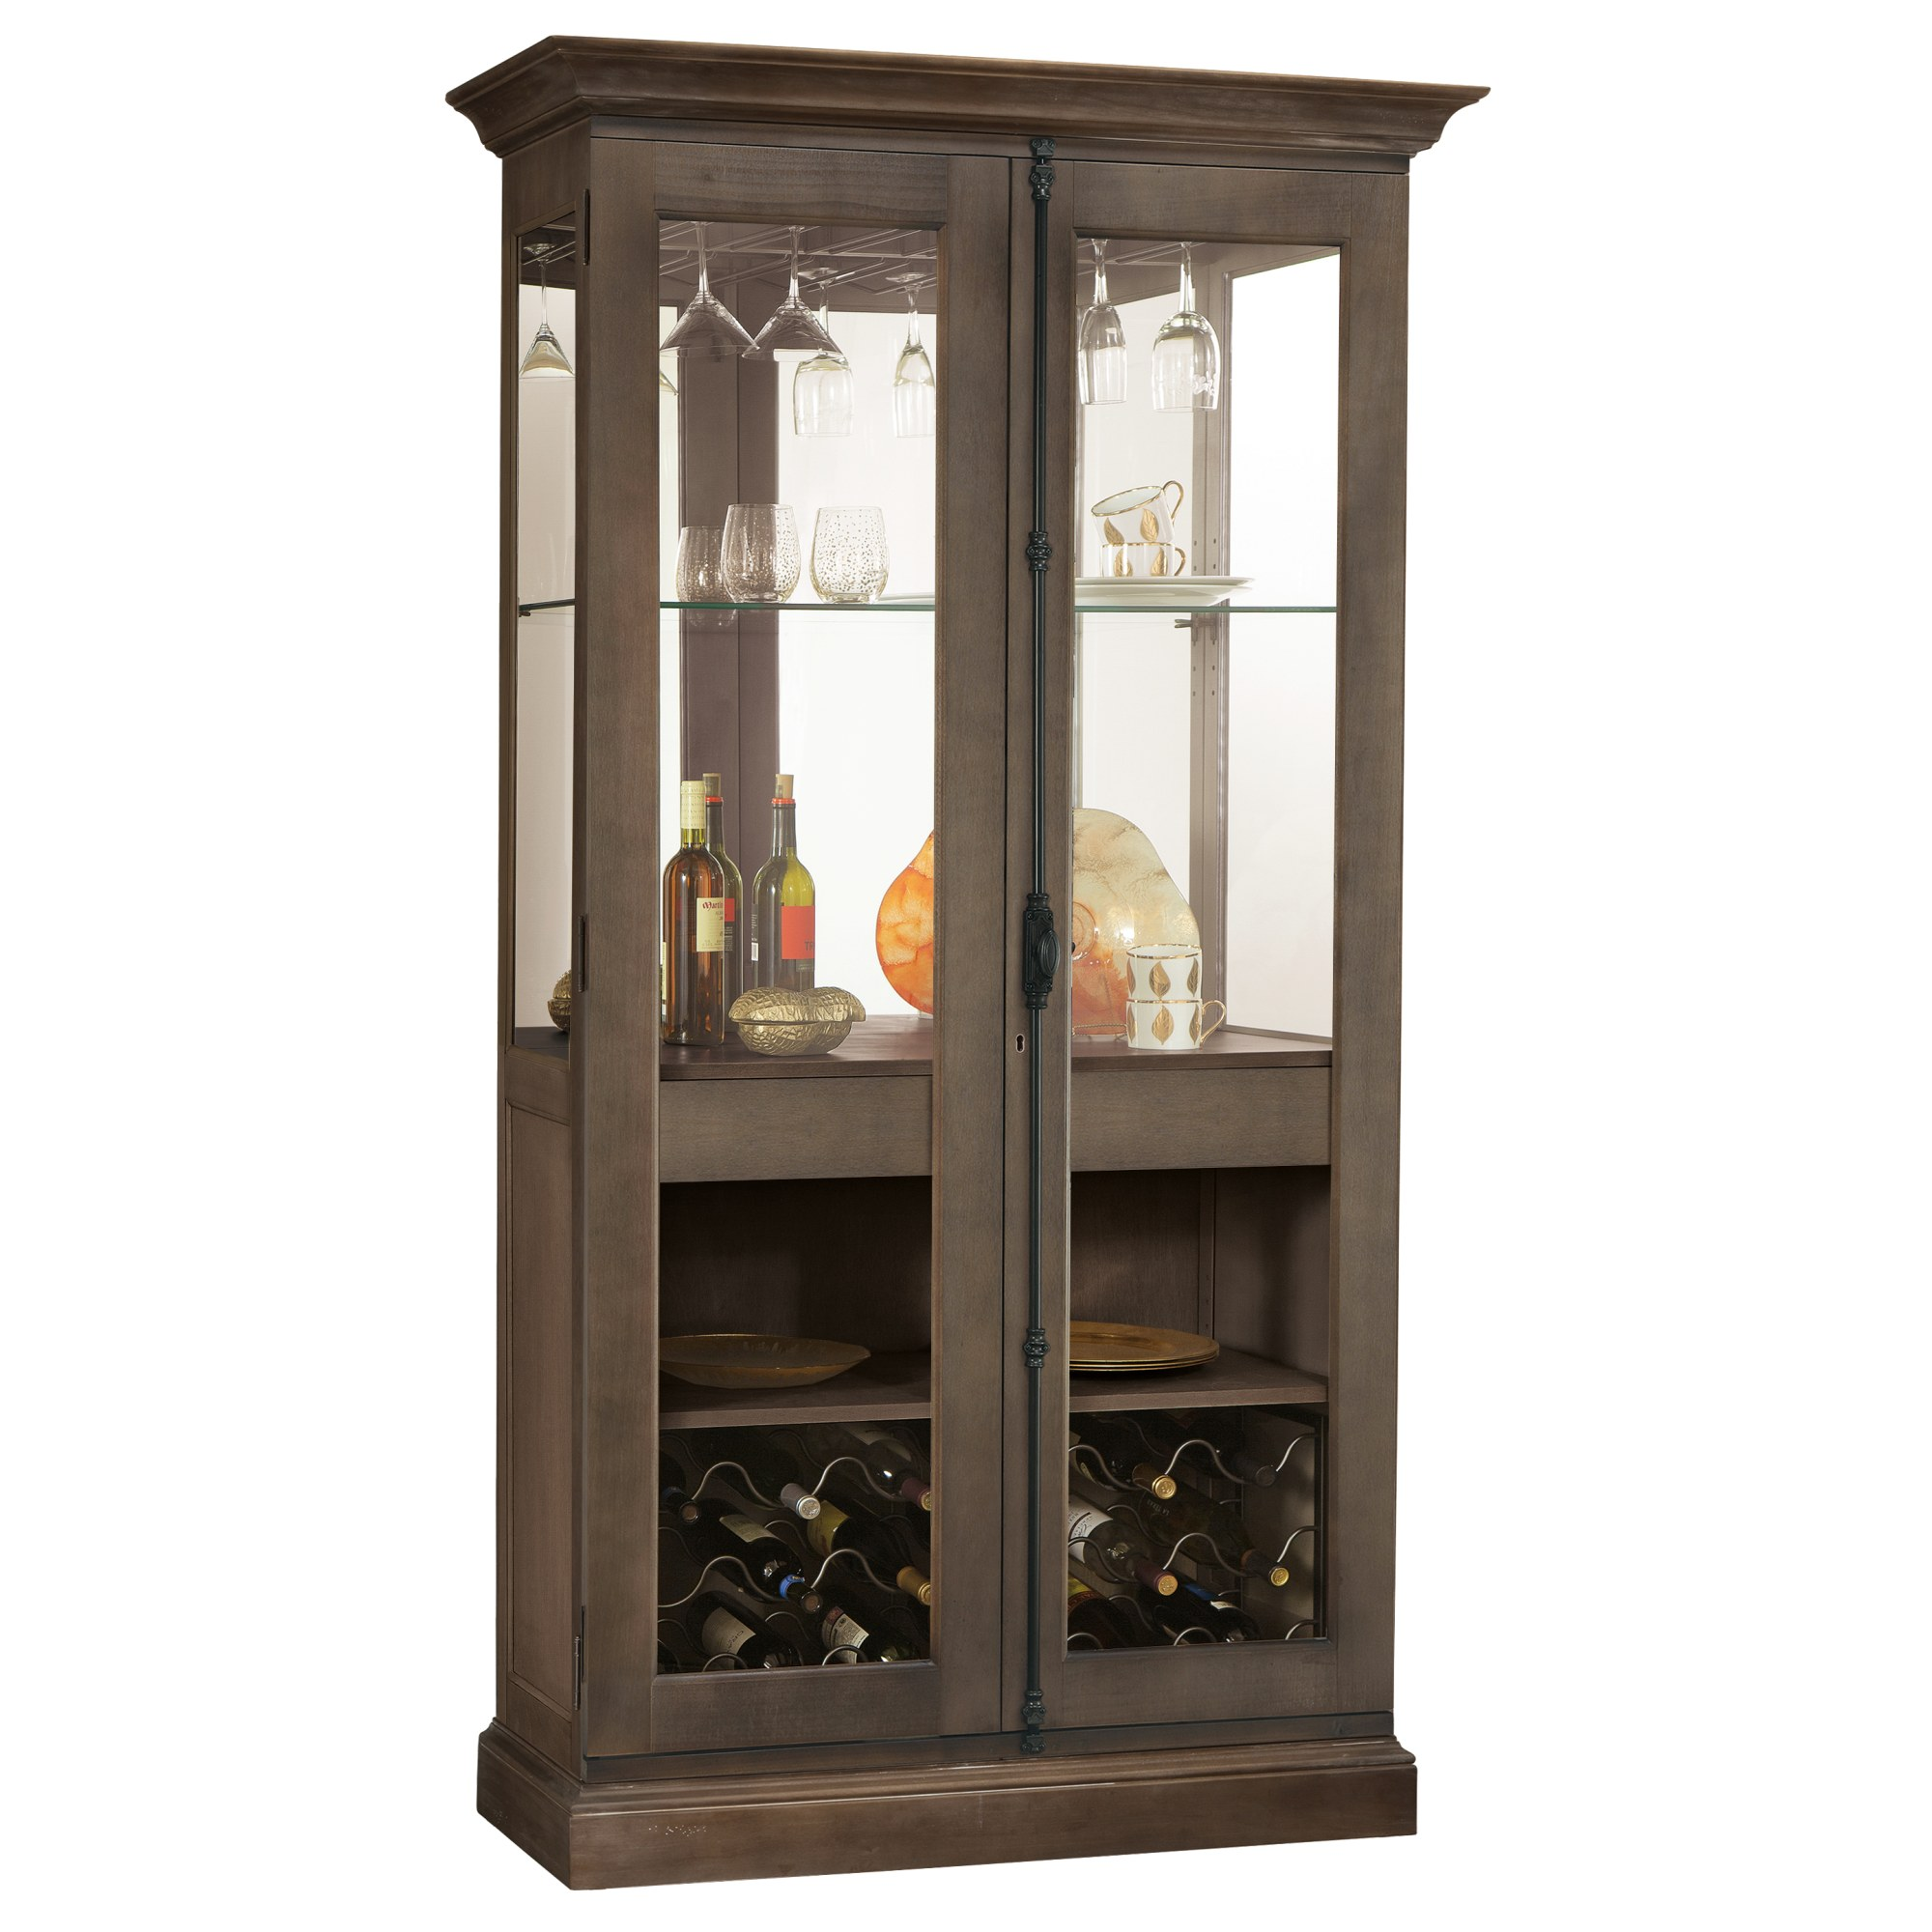 Image for 690-041 Socialize Wine & Bar Cabinet from Howard Miller Official Website